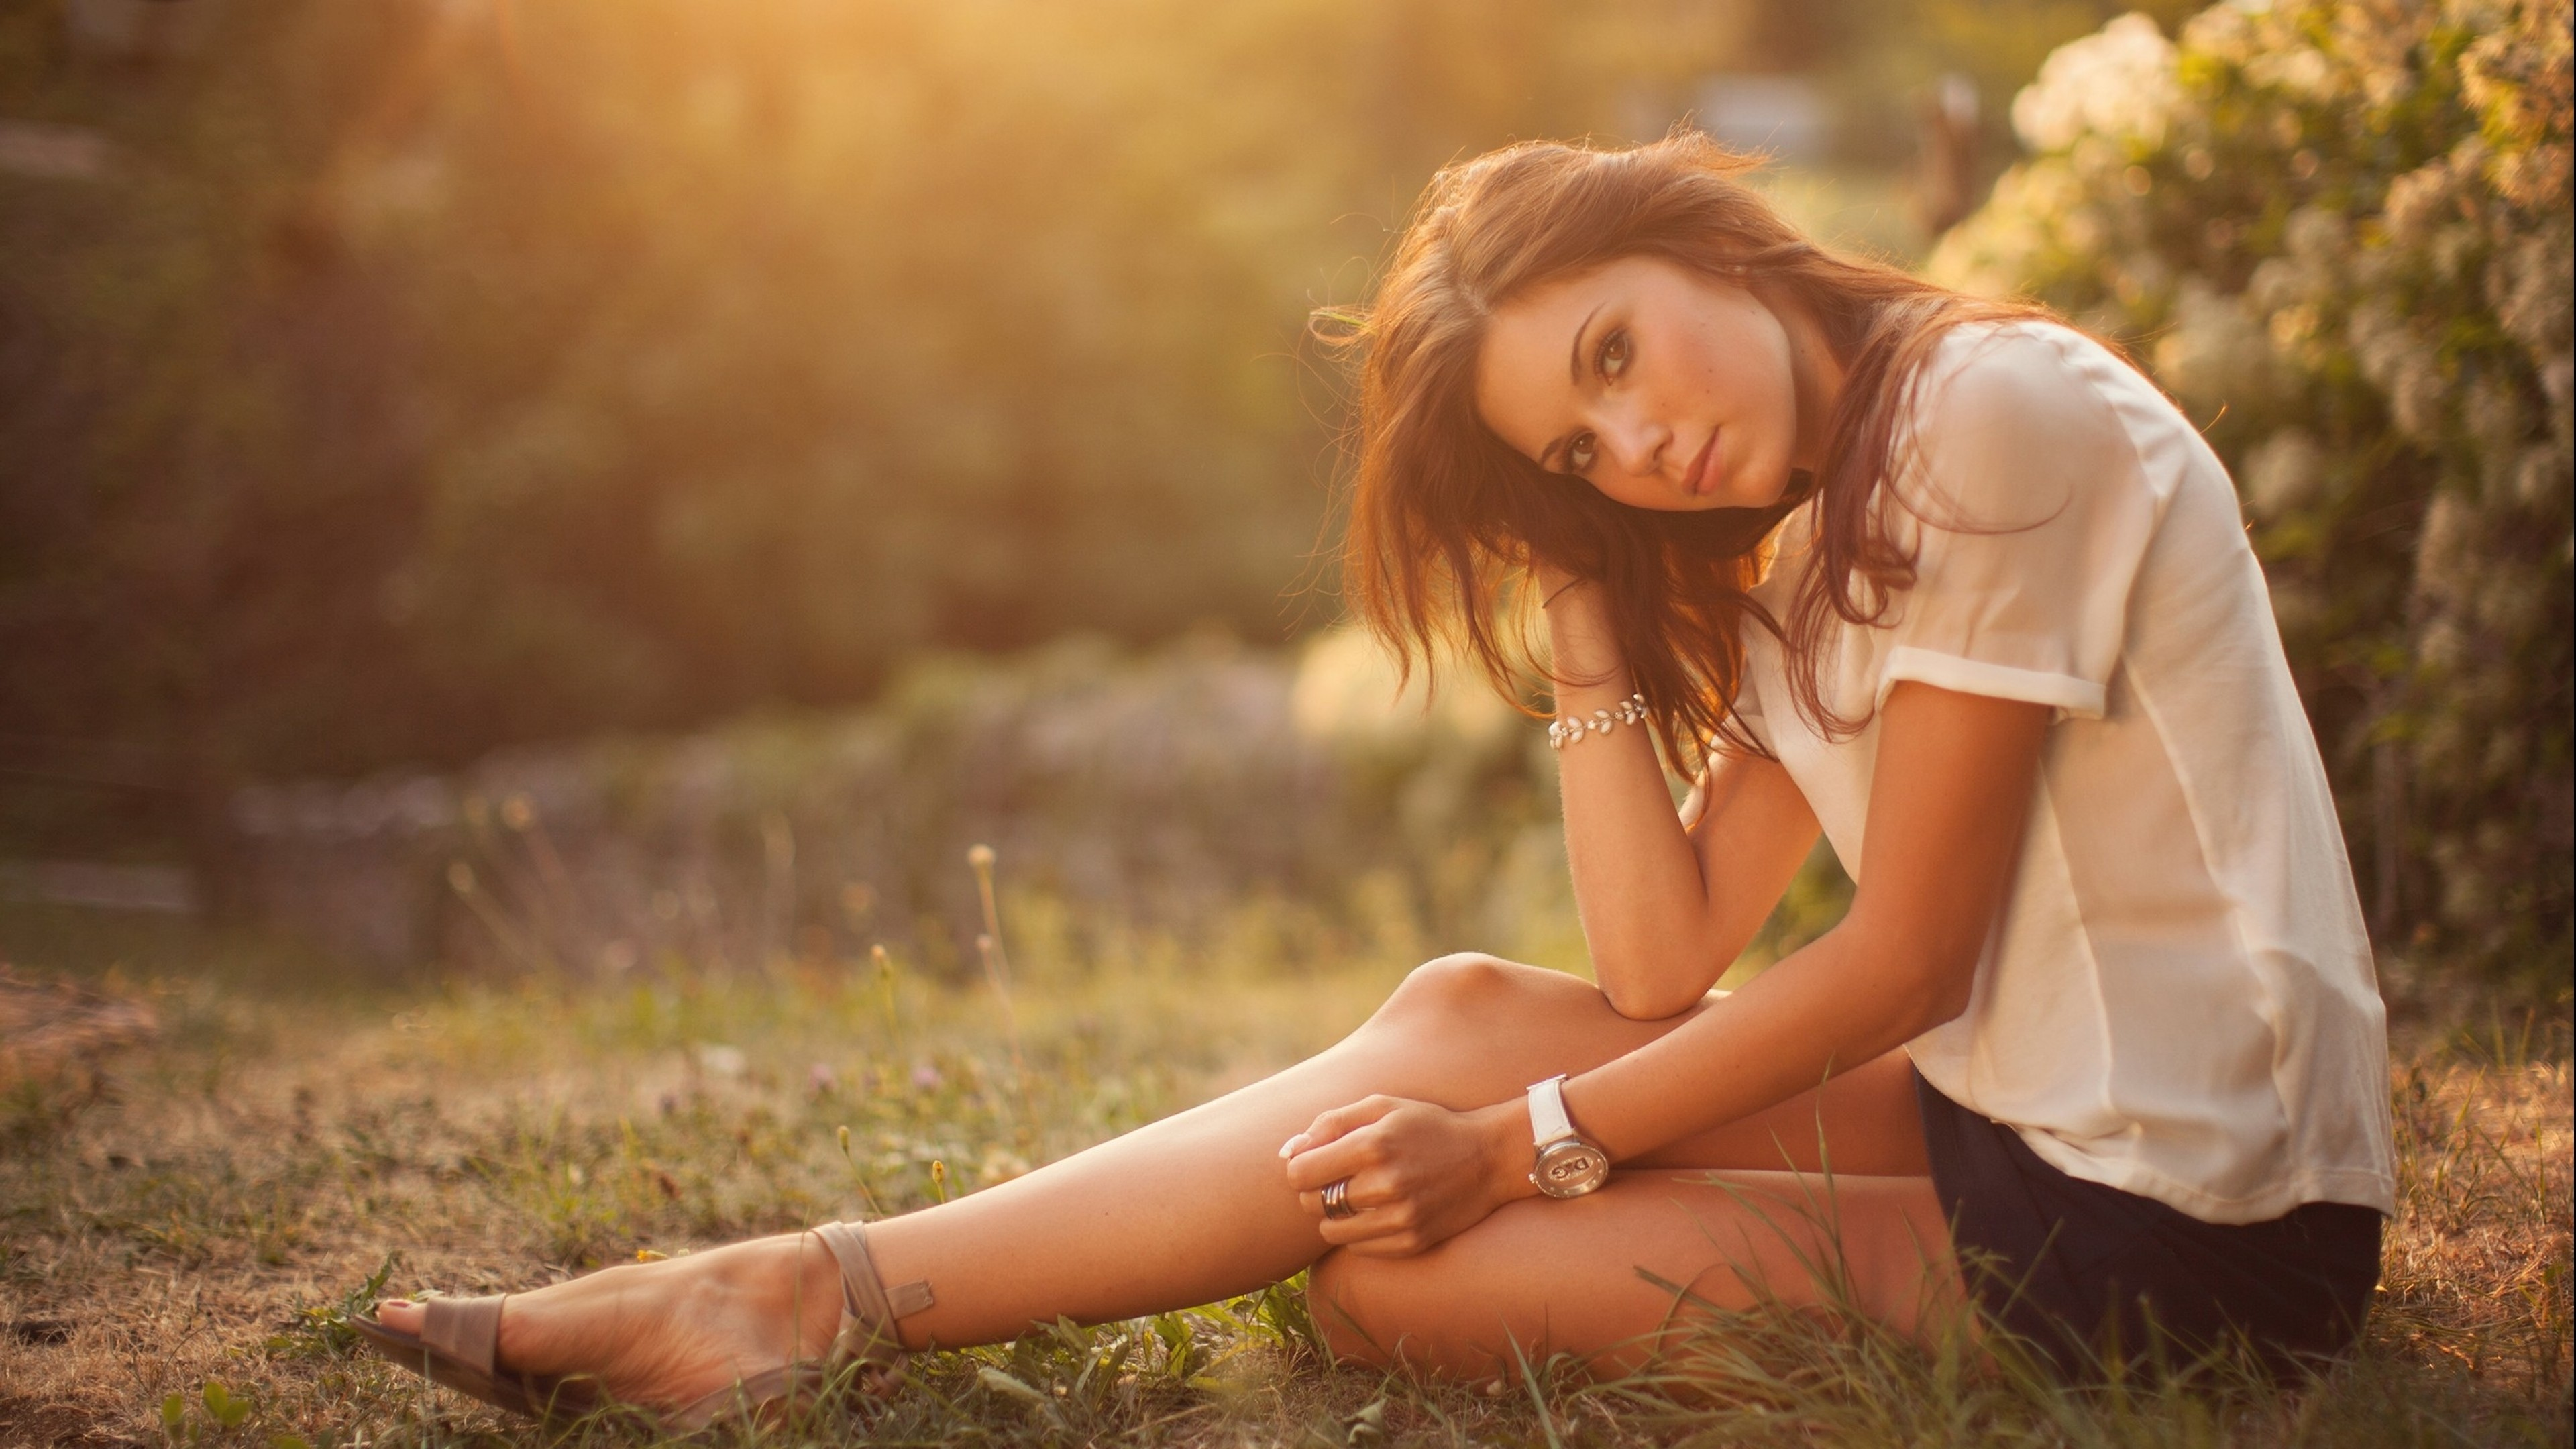 People 3840x2160 women brunette sitting blouses skirt legs women outdoors soft gradient  watches artificial lights plants bokeh photography model looking at viewer